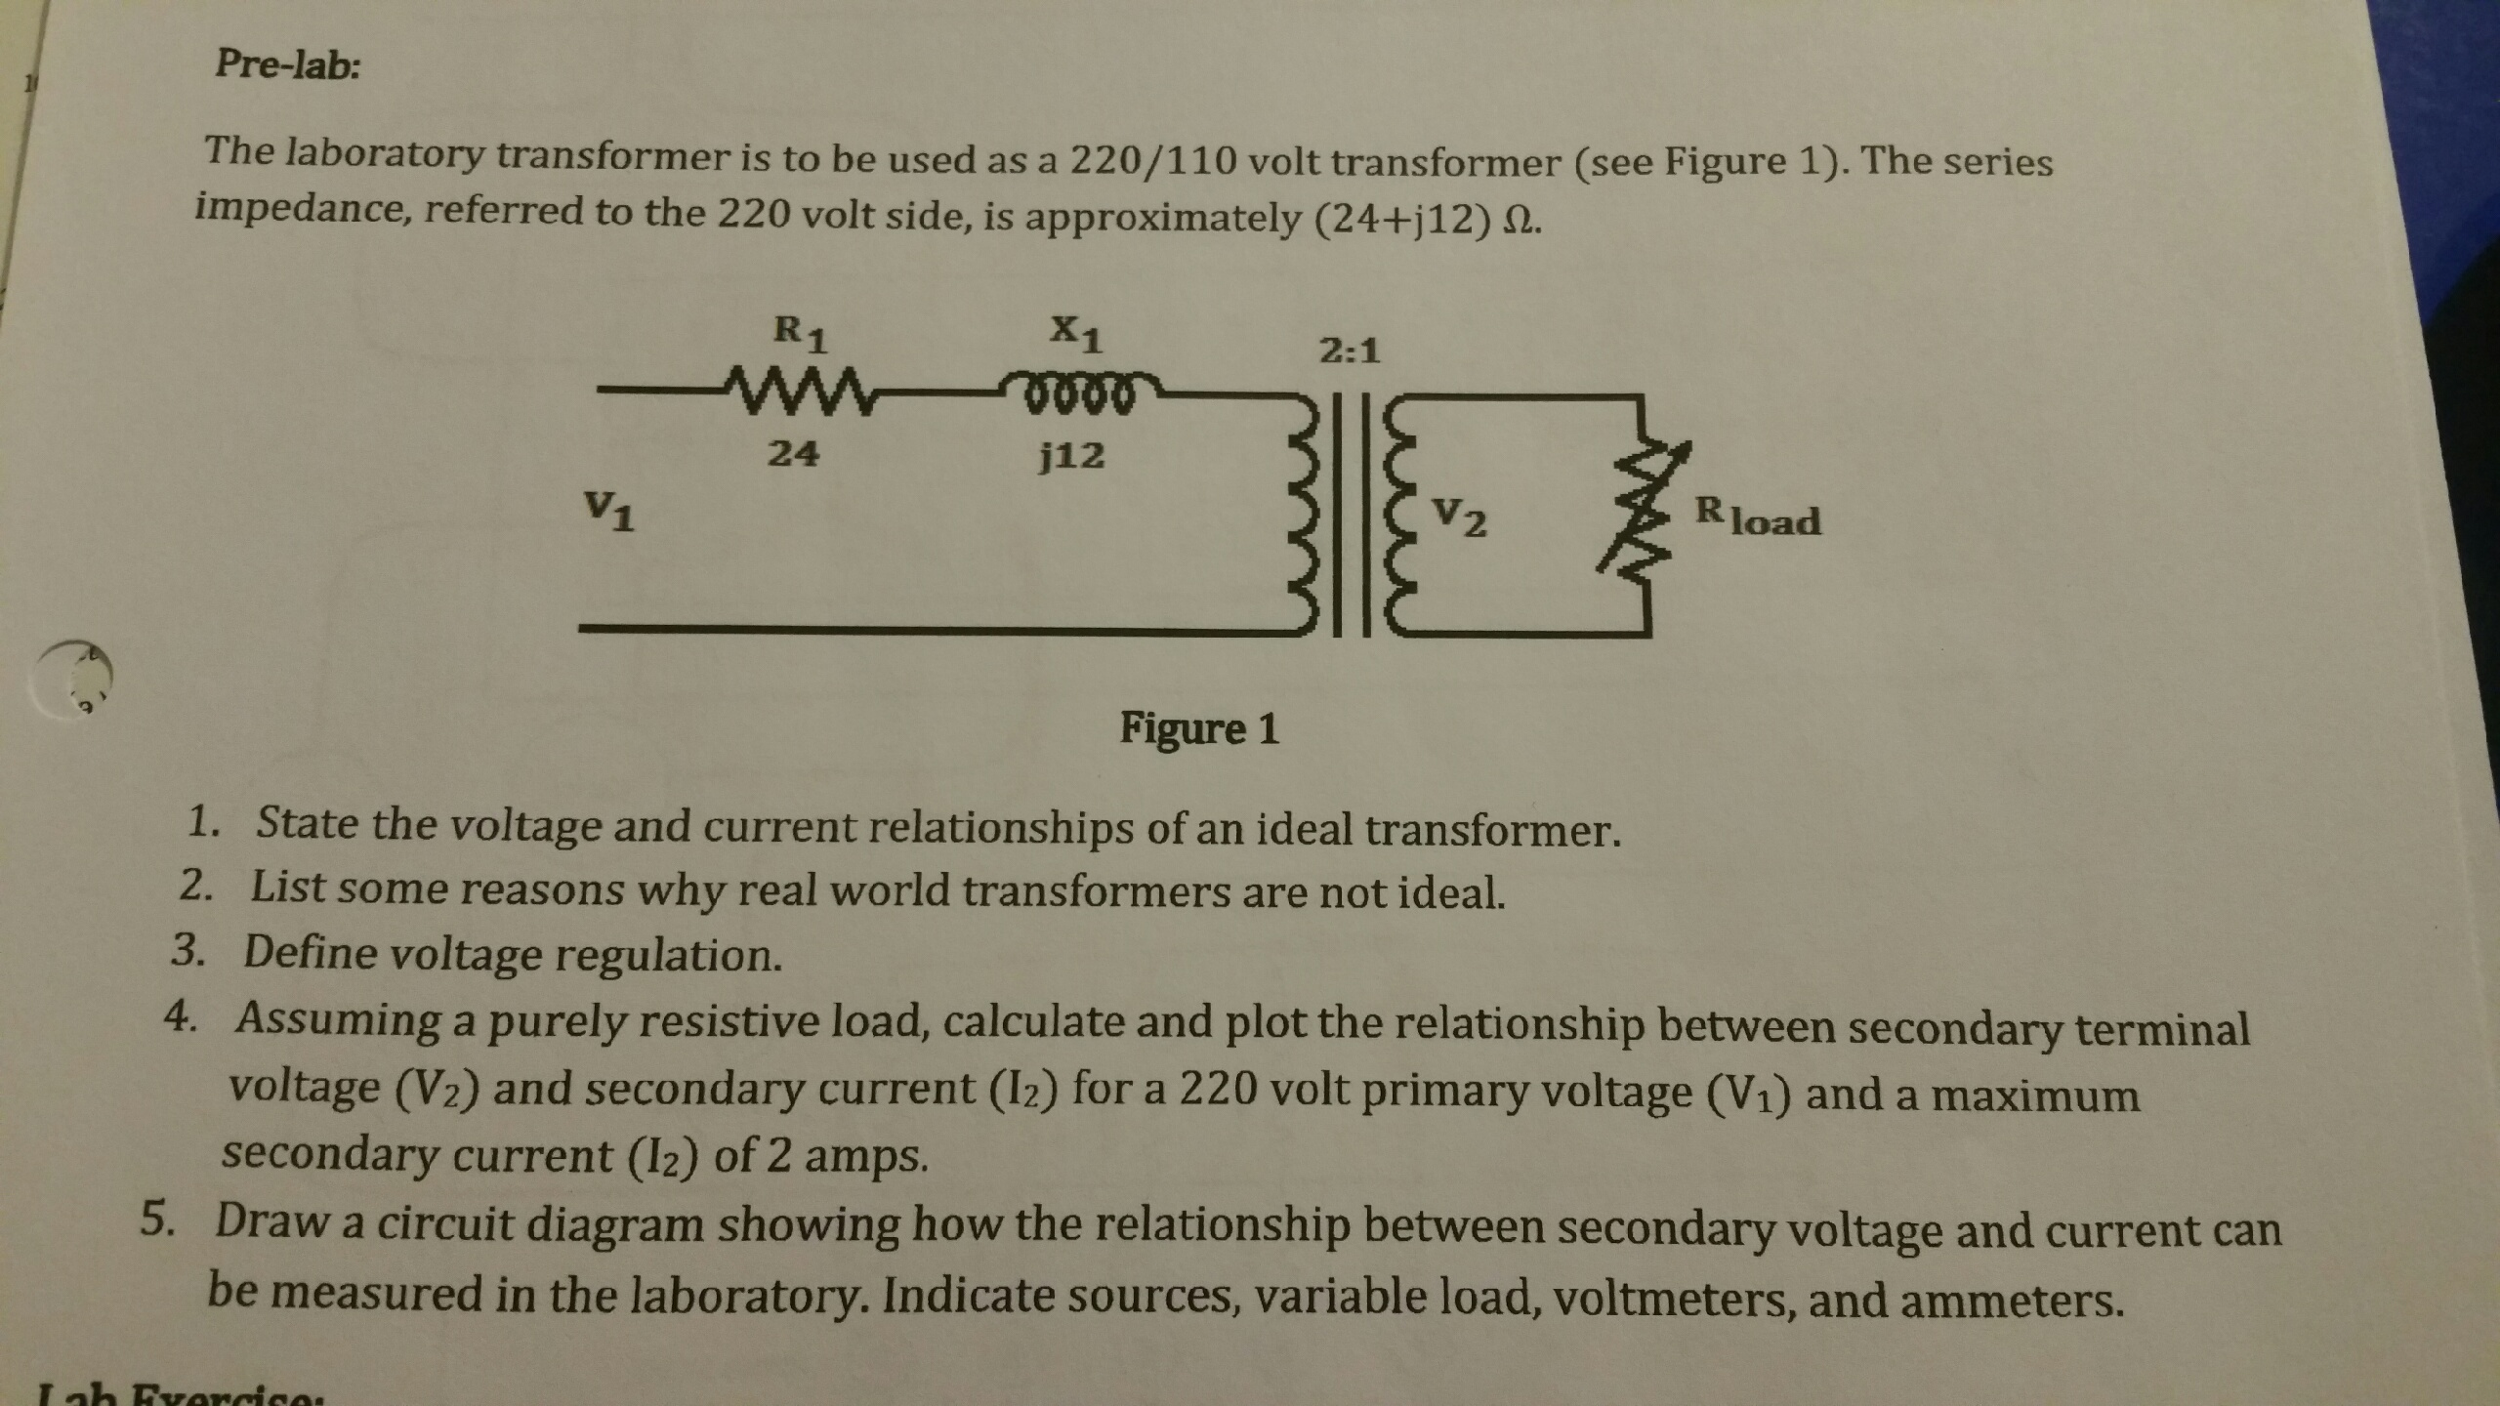 voltage and current lab Ohm's law lab purpose: to perform an experimental check of ohm's law by determining the relationship between current, voltage, and resistance we also are doing this lab to practice constructing electric circuits and to understand voltmeters, ammeters, and real batteries/power supplies background.